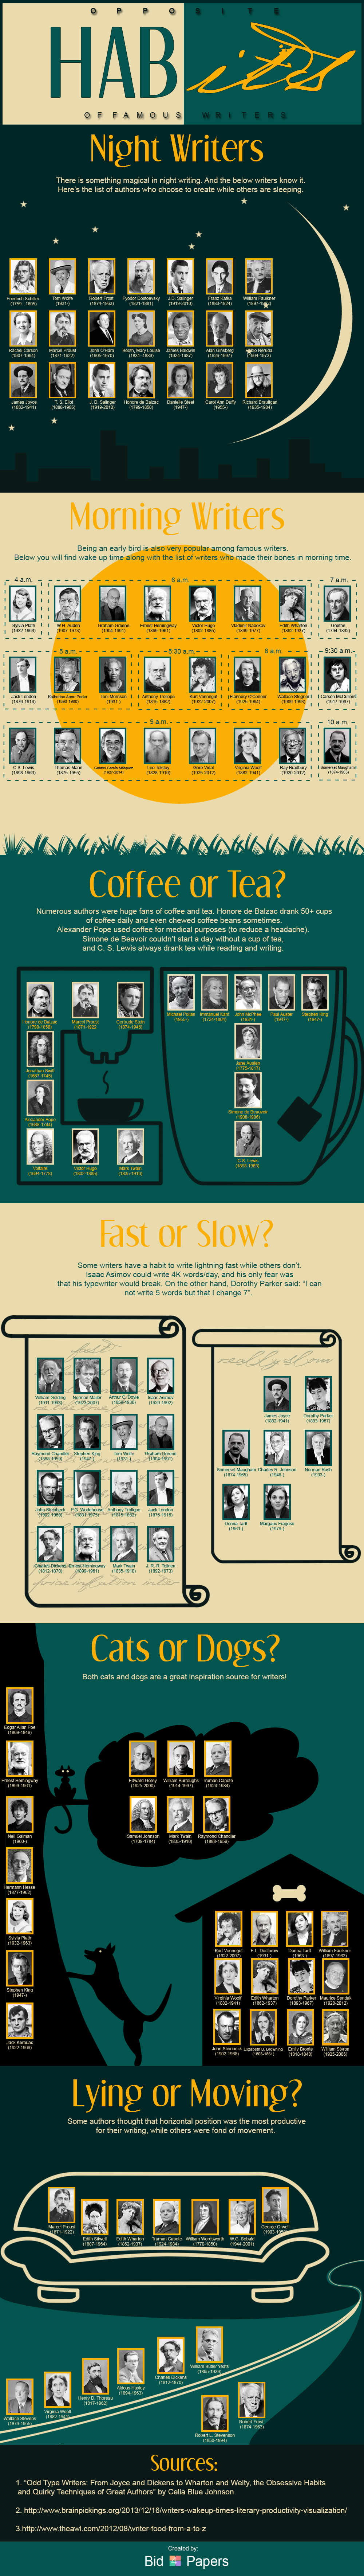 opposite habits of famous writers infographic by bid4papers